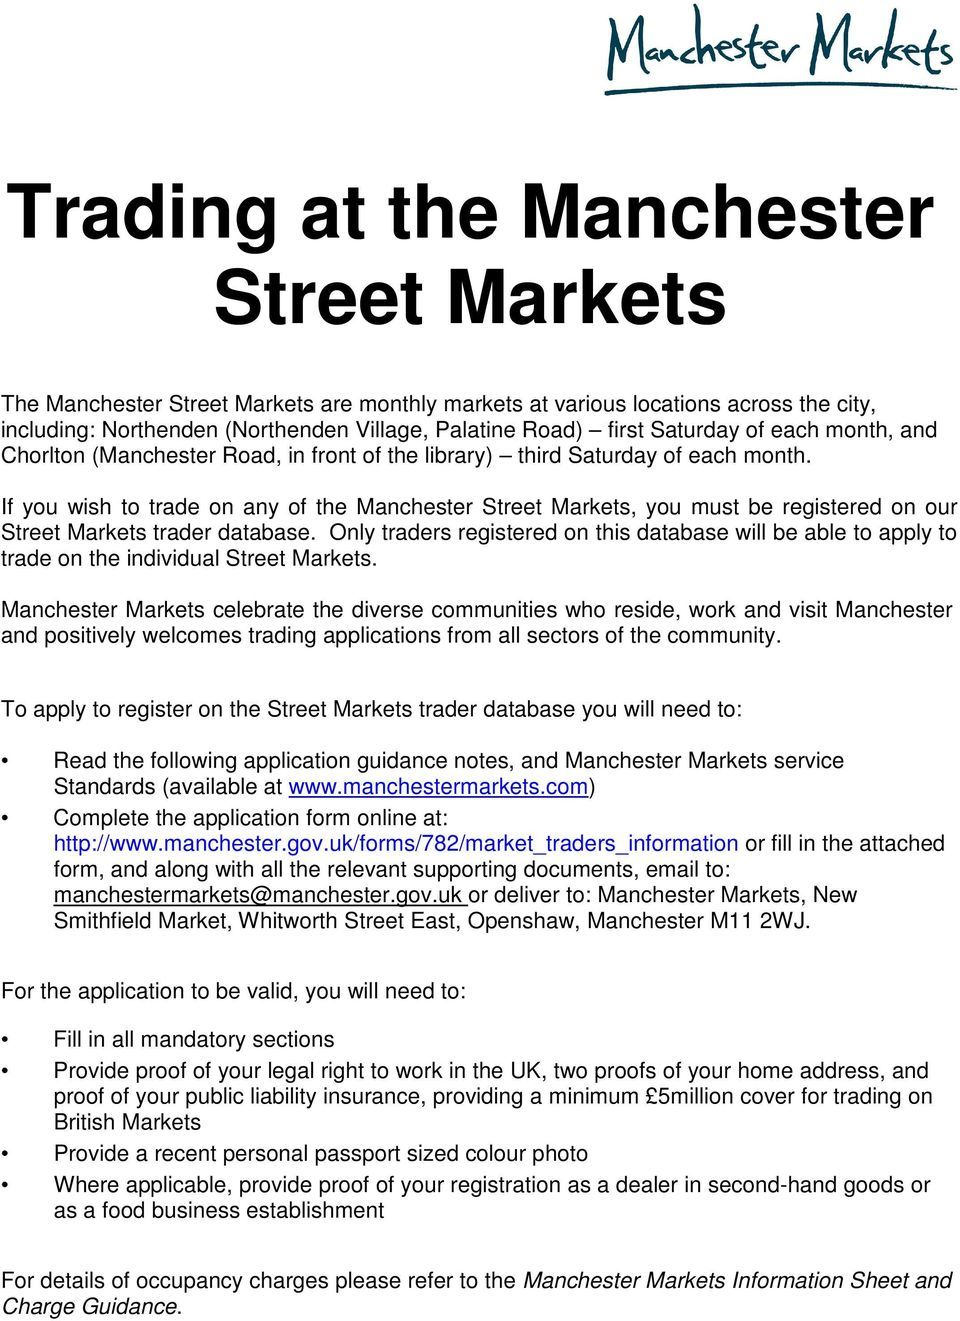 If you wish to trade on any of the Manchester Street Markets, you must be registered on our Street Markets trader database.